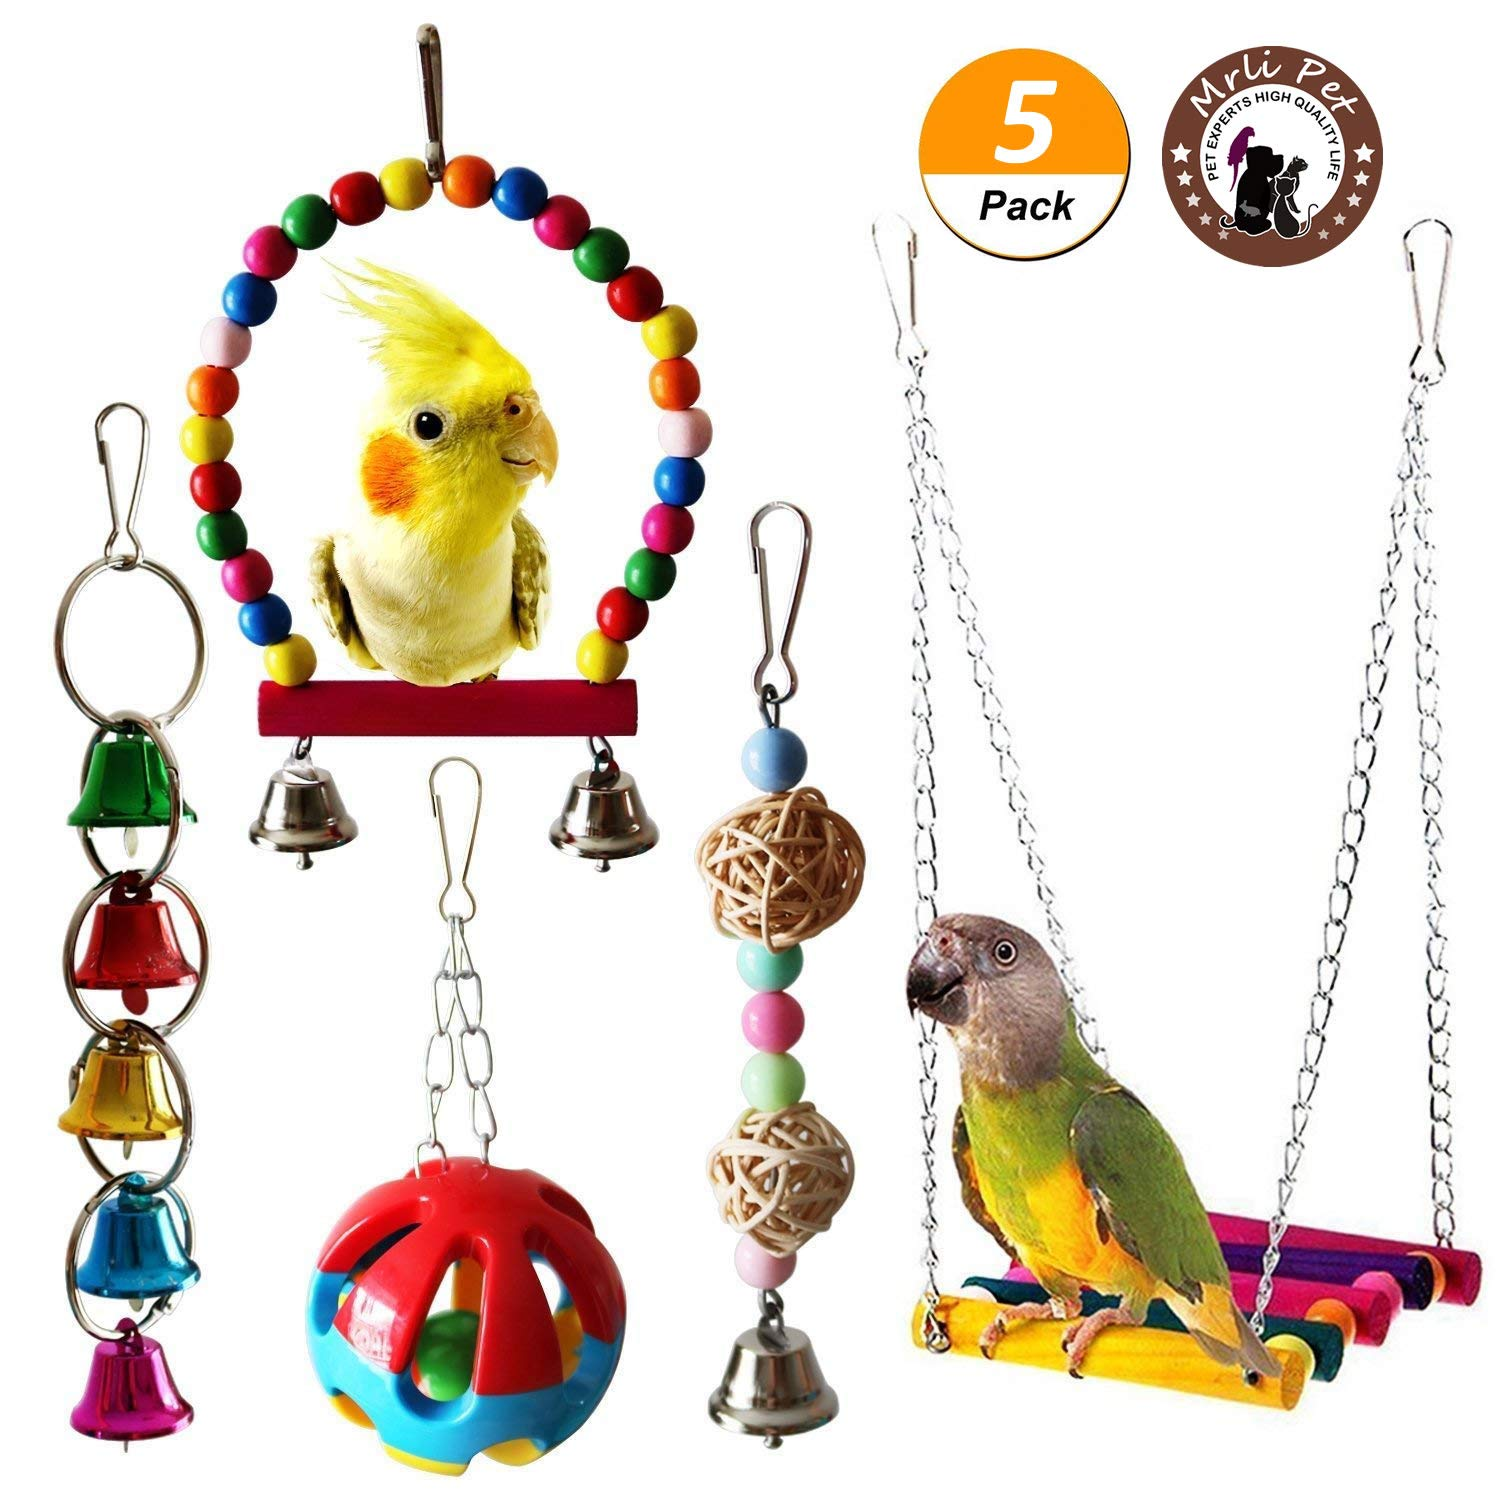 Mrlipet Bird Swing Toys with Colorful Wood Beads Bells and Wooden Hammock Hanging Perch for Budgie Lovebirds Conures Small Parakeet Cages Decorative Accessories (Bird Swing Toys with Bell) by Mrli Pet